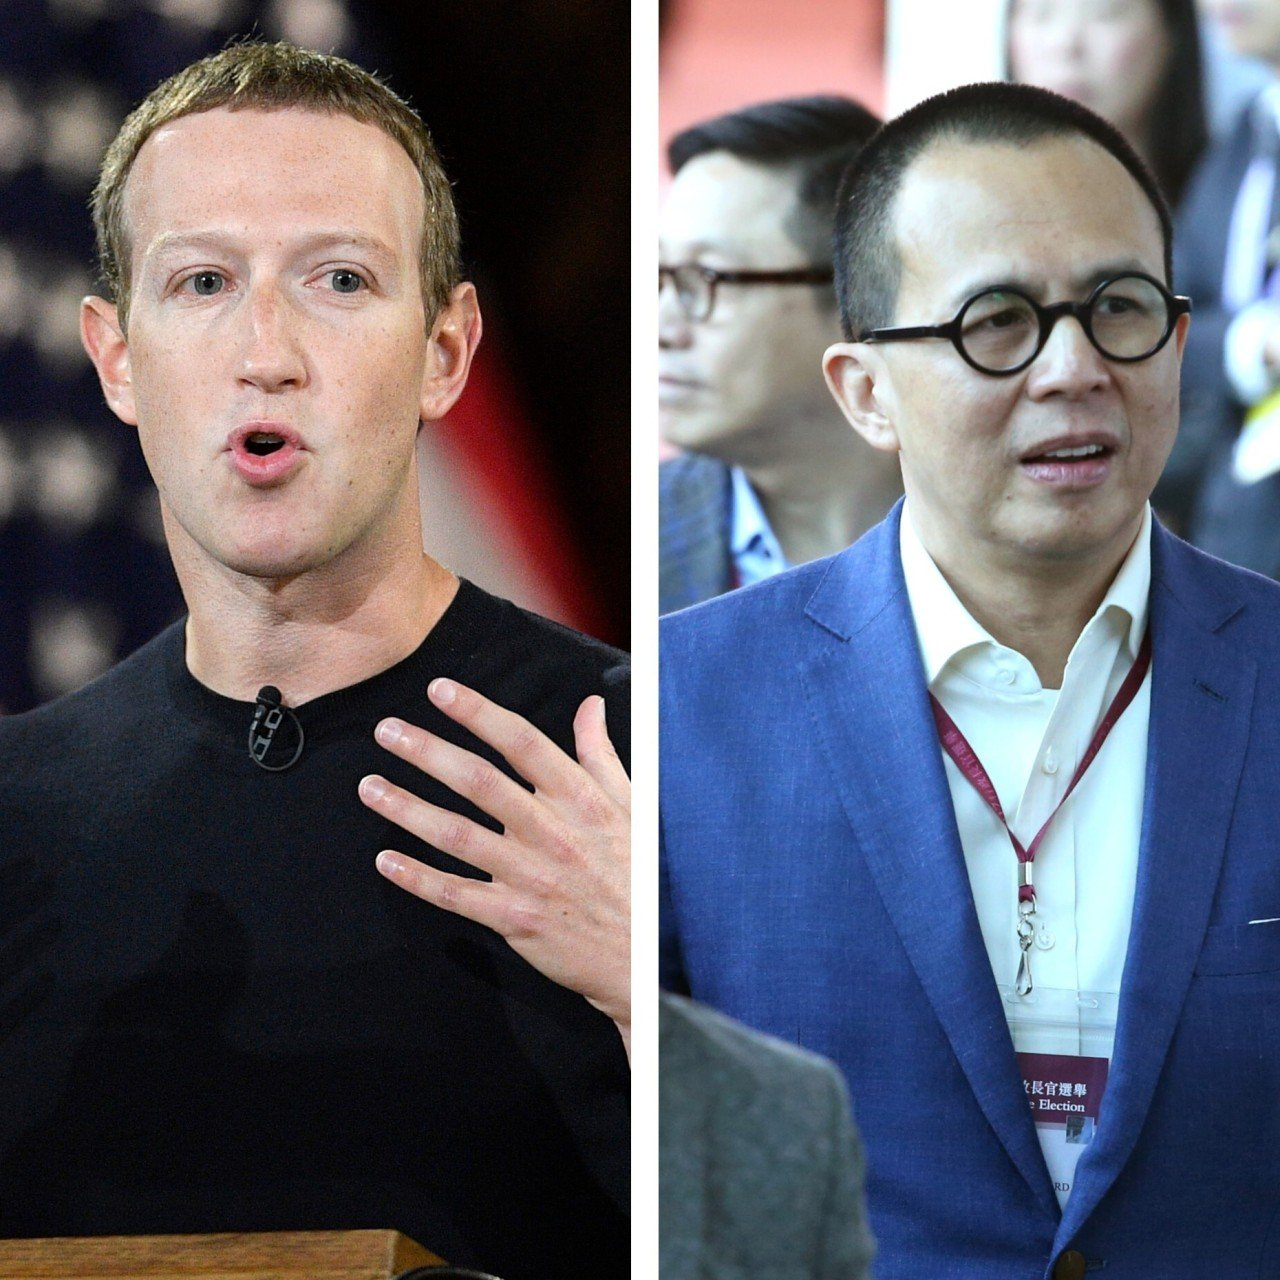 Bill Gates And Mark Zuckerberg Aren T The Only Super Rich College Drop Outs 6 More Billionaires Who Never Graduated From University South China Morning Post